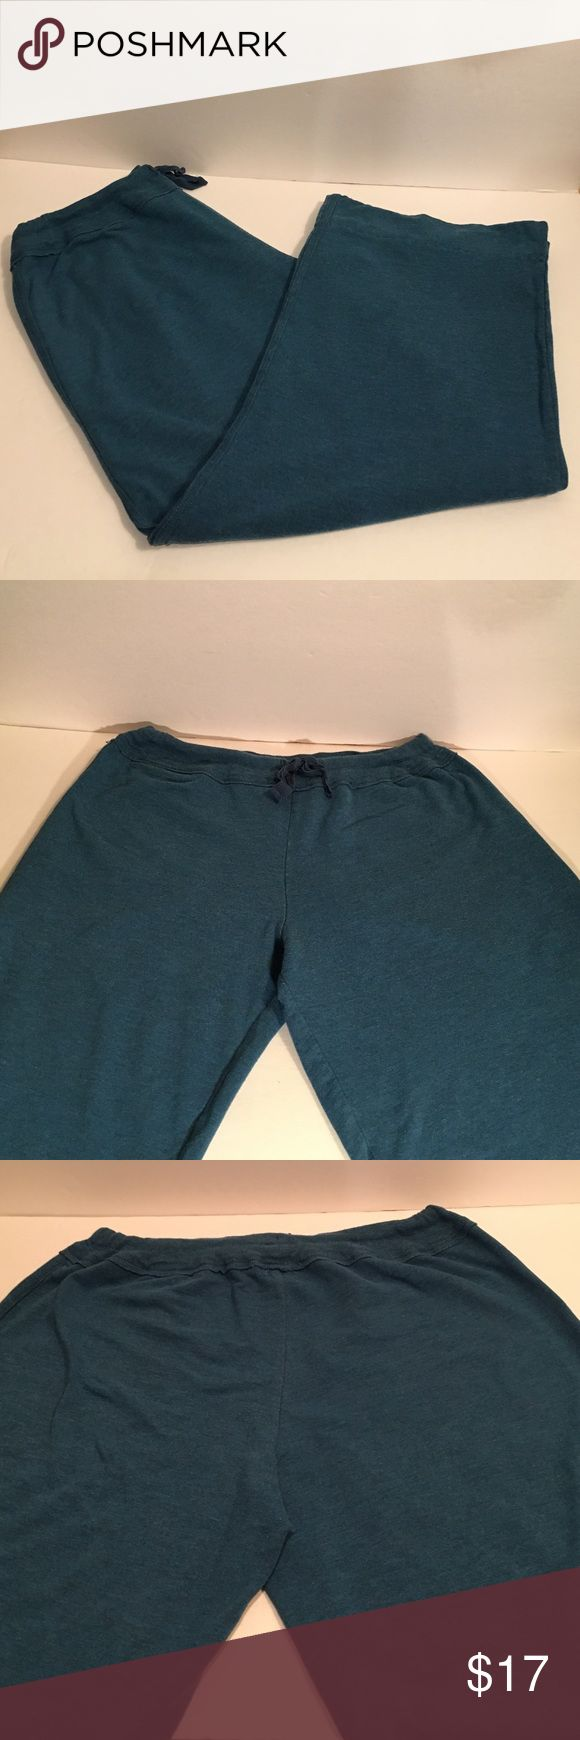 Blue Simply Vera by Vera Wang Lounge Pants Blue Simply Vera by Vera Wang Lounge Pants. Size large. Good condition with some wear. Simply Vera Vera Wang Pants Track Pants & Joggers